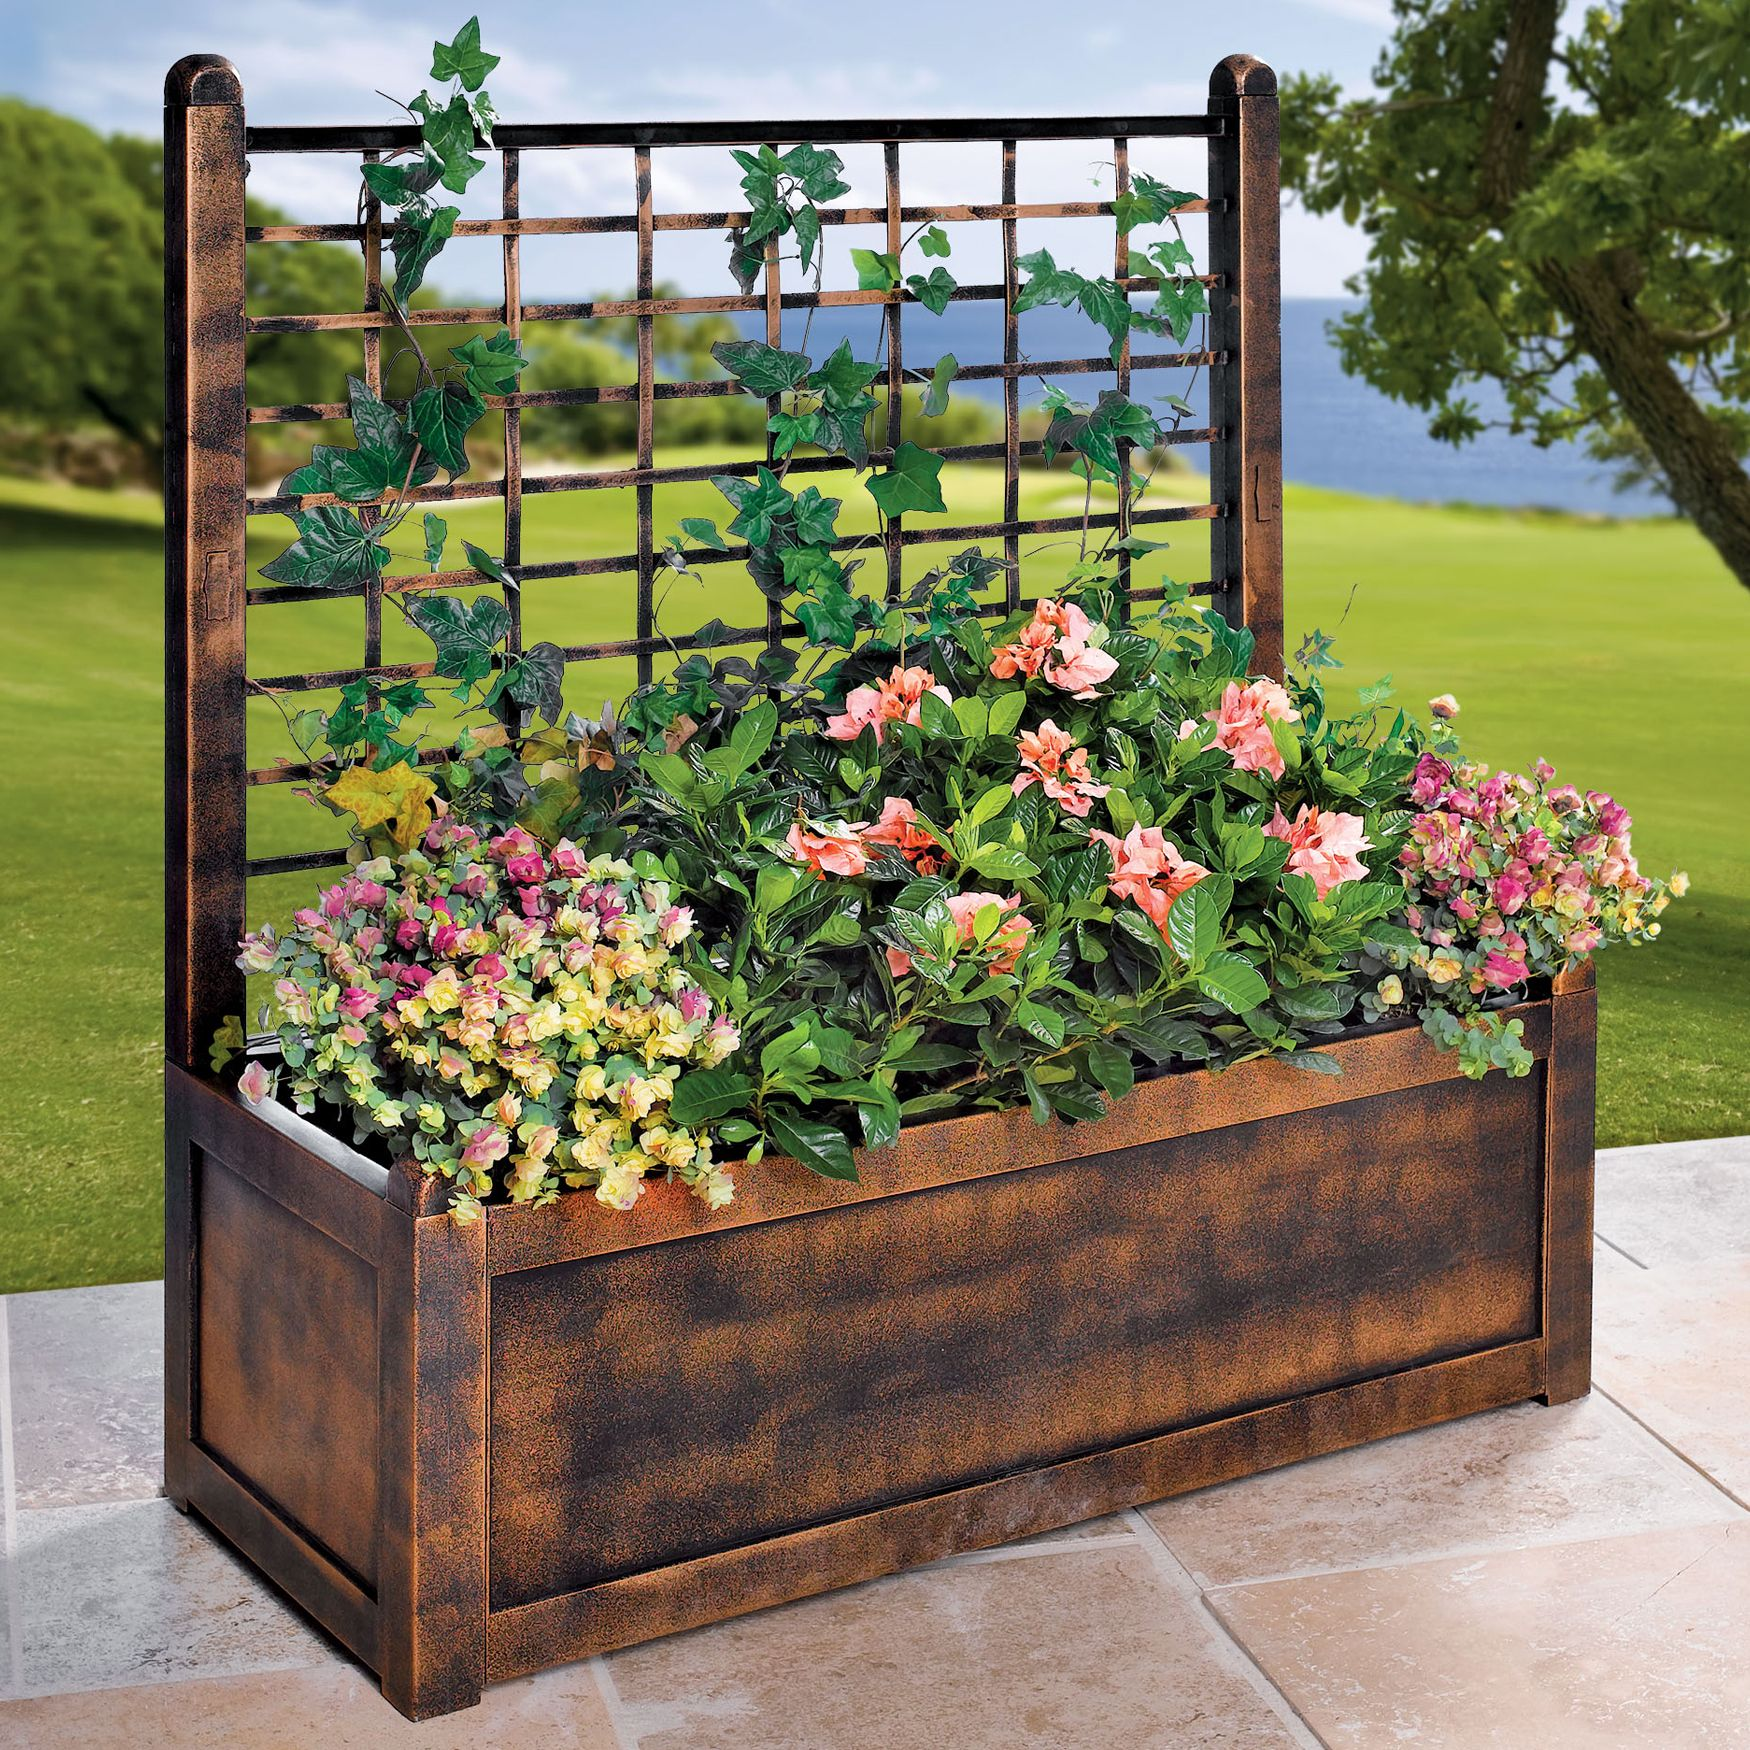 Flower box with trellis sale brylanehome we have a wooden flower box with trellis sale brylanehome we have a wooden trunkbox baanklon Gallery